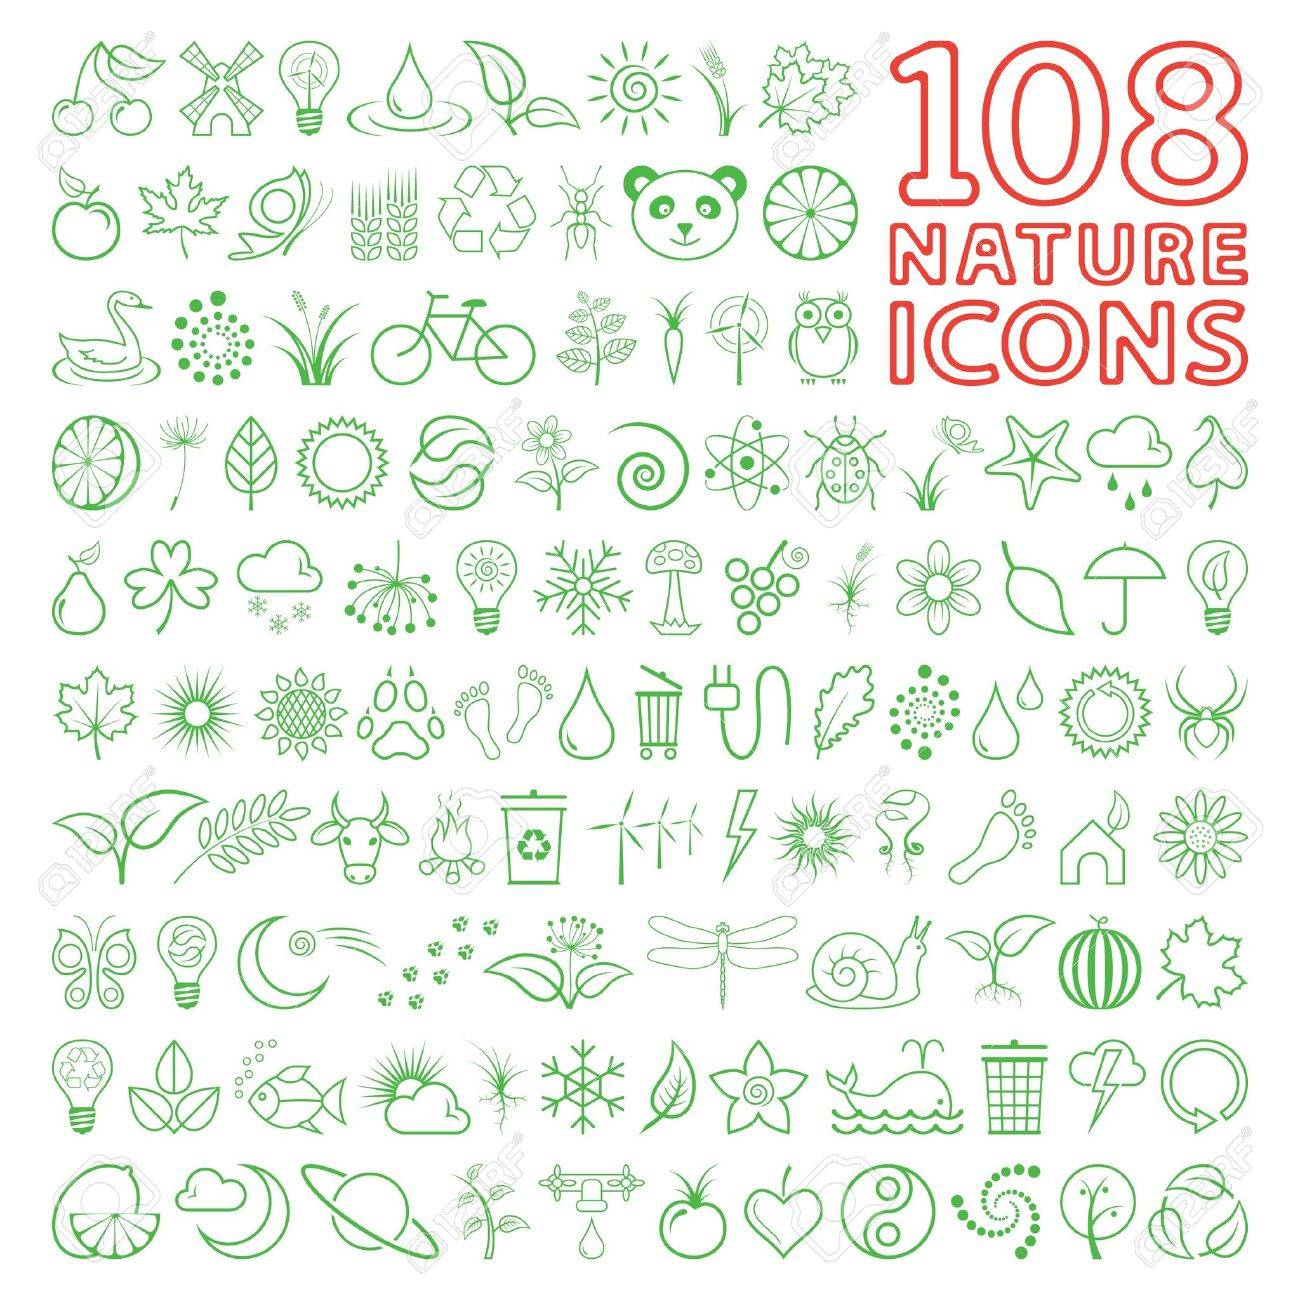 Nature Icons Stock Vector - 7130147